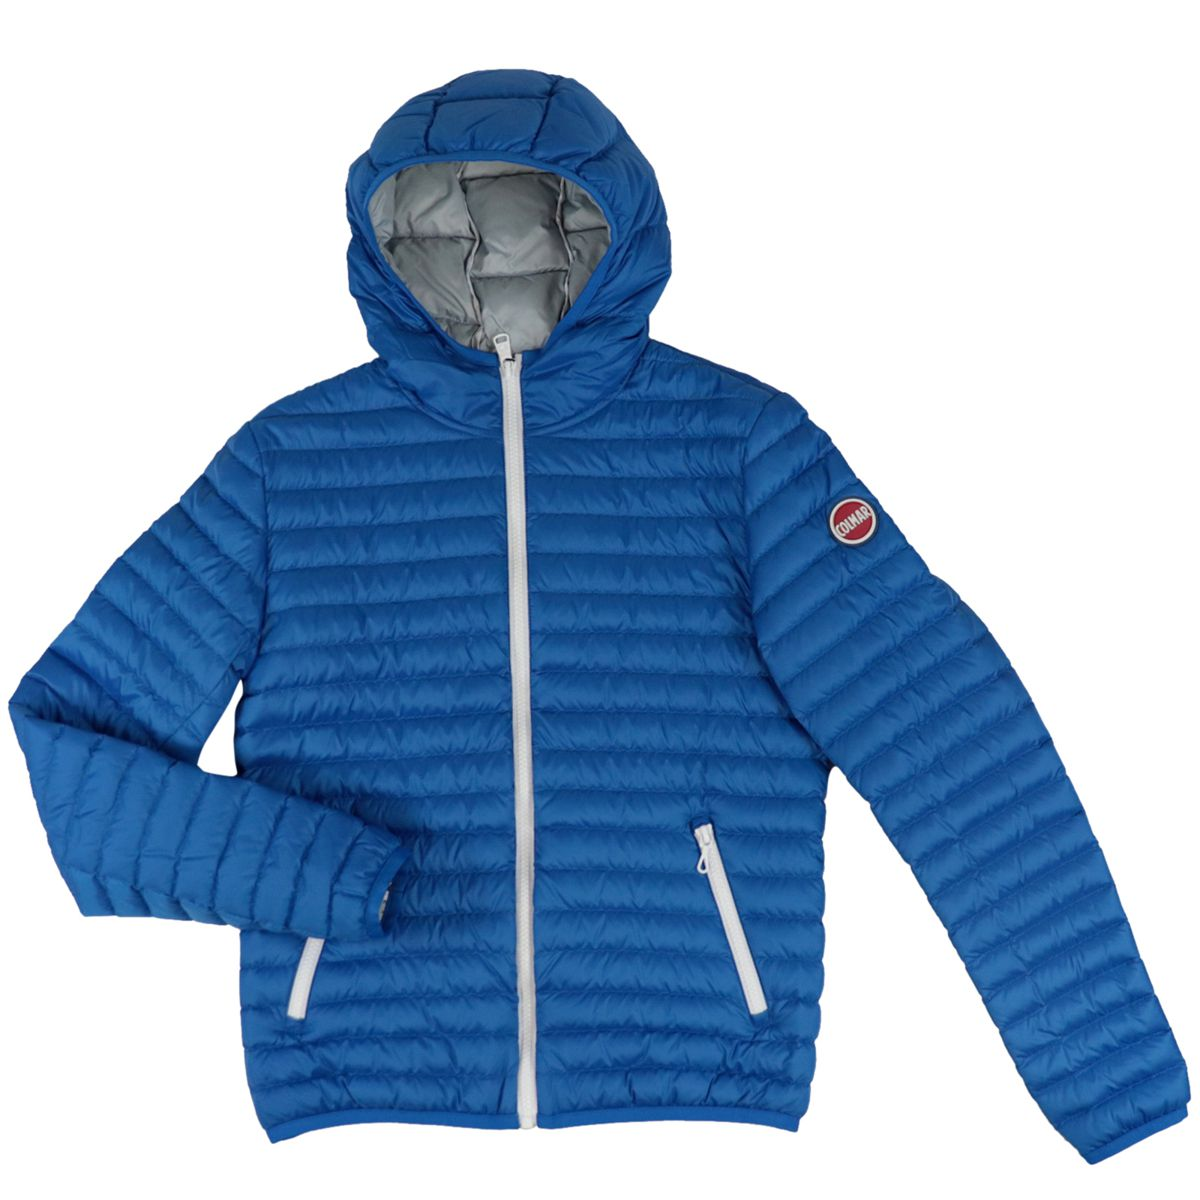 Semi-light quilted nylon down jacket with hood Bluette Colmar